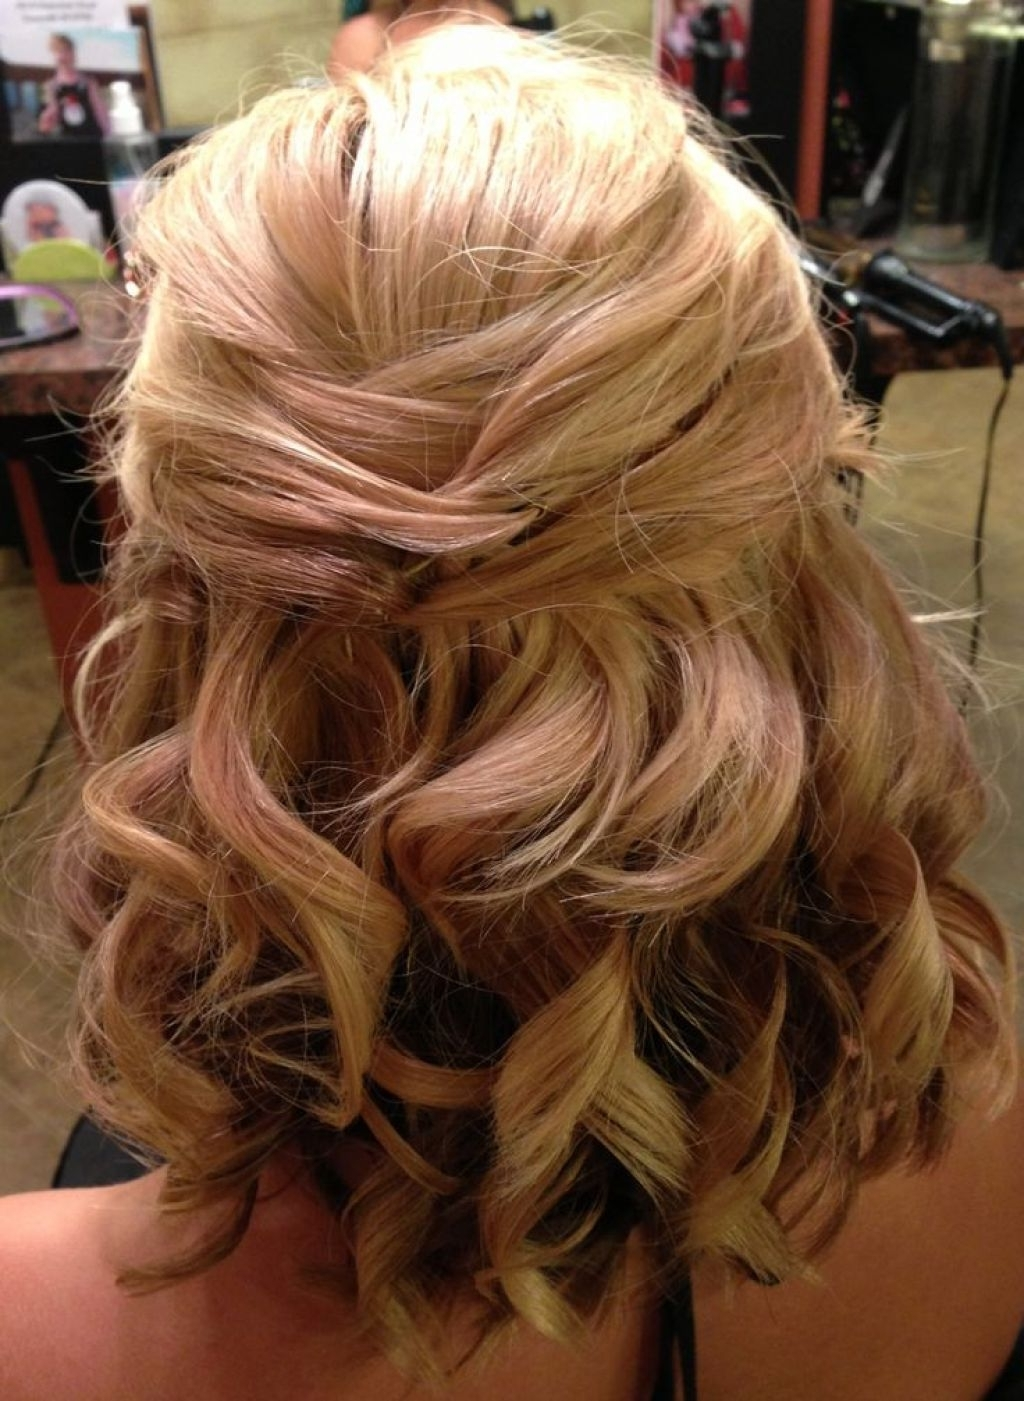 Fashionable Half Up Half Down Wedding Hairstyles For Medium Length Hair Regarding Appealing Half Up Down Wedding Hairstyles Fall In Love With Picture (View 11 of 15)